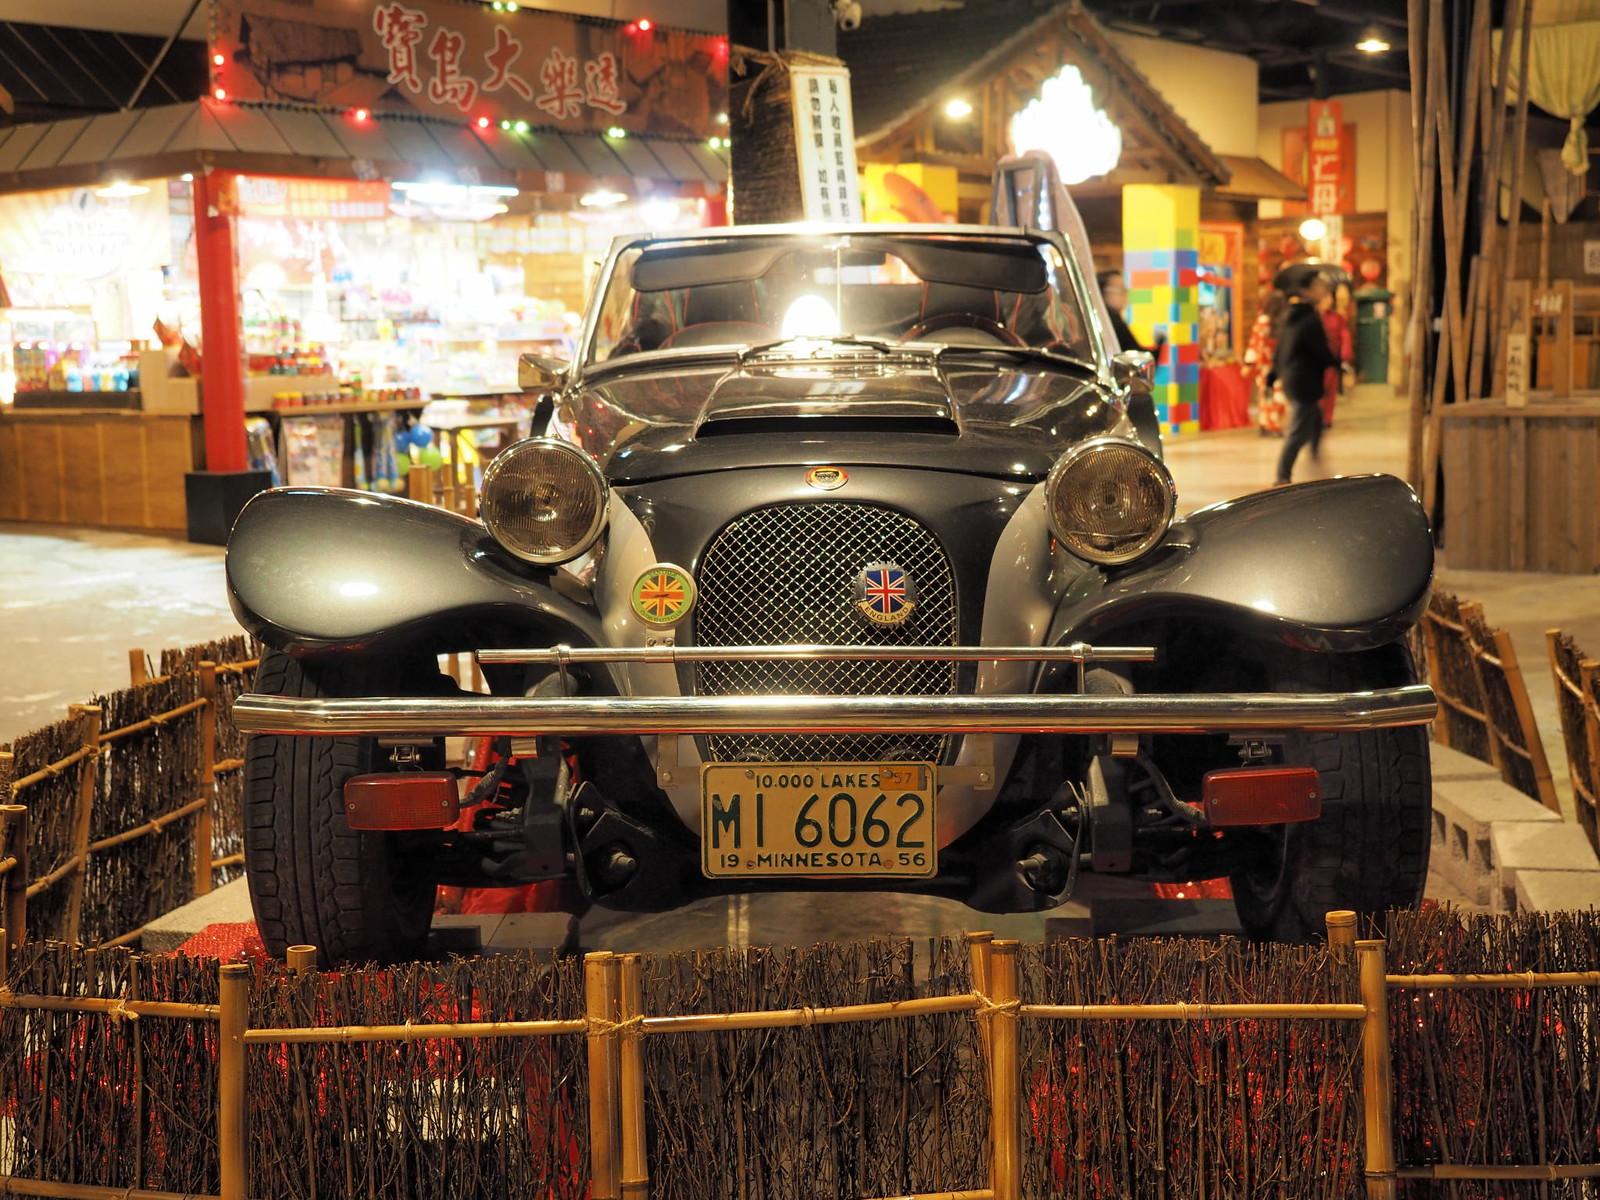 A vintage car on display